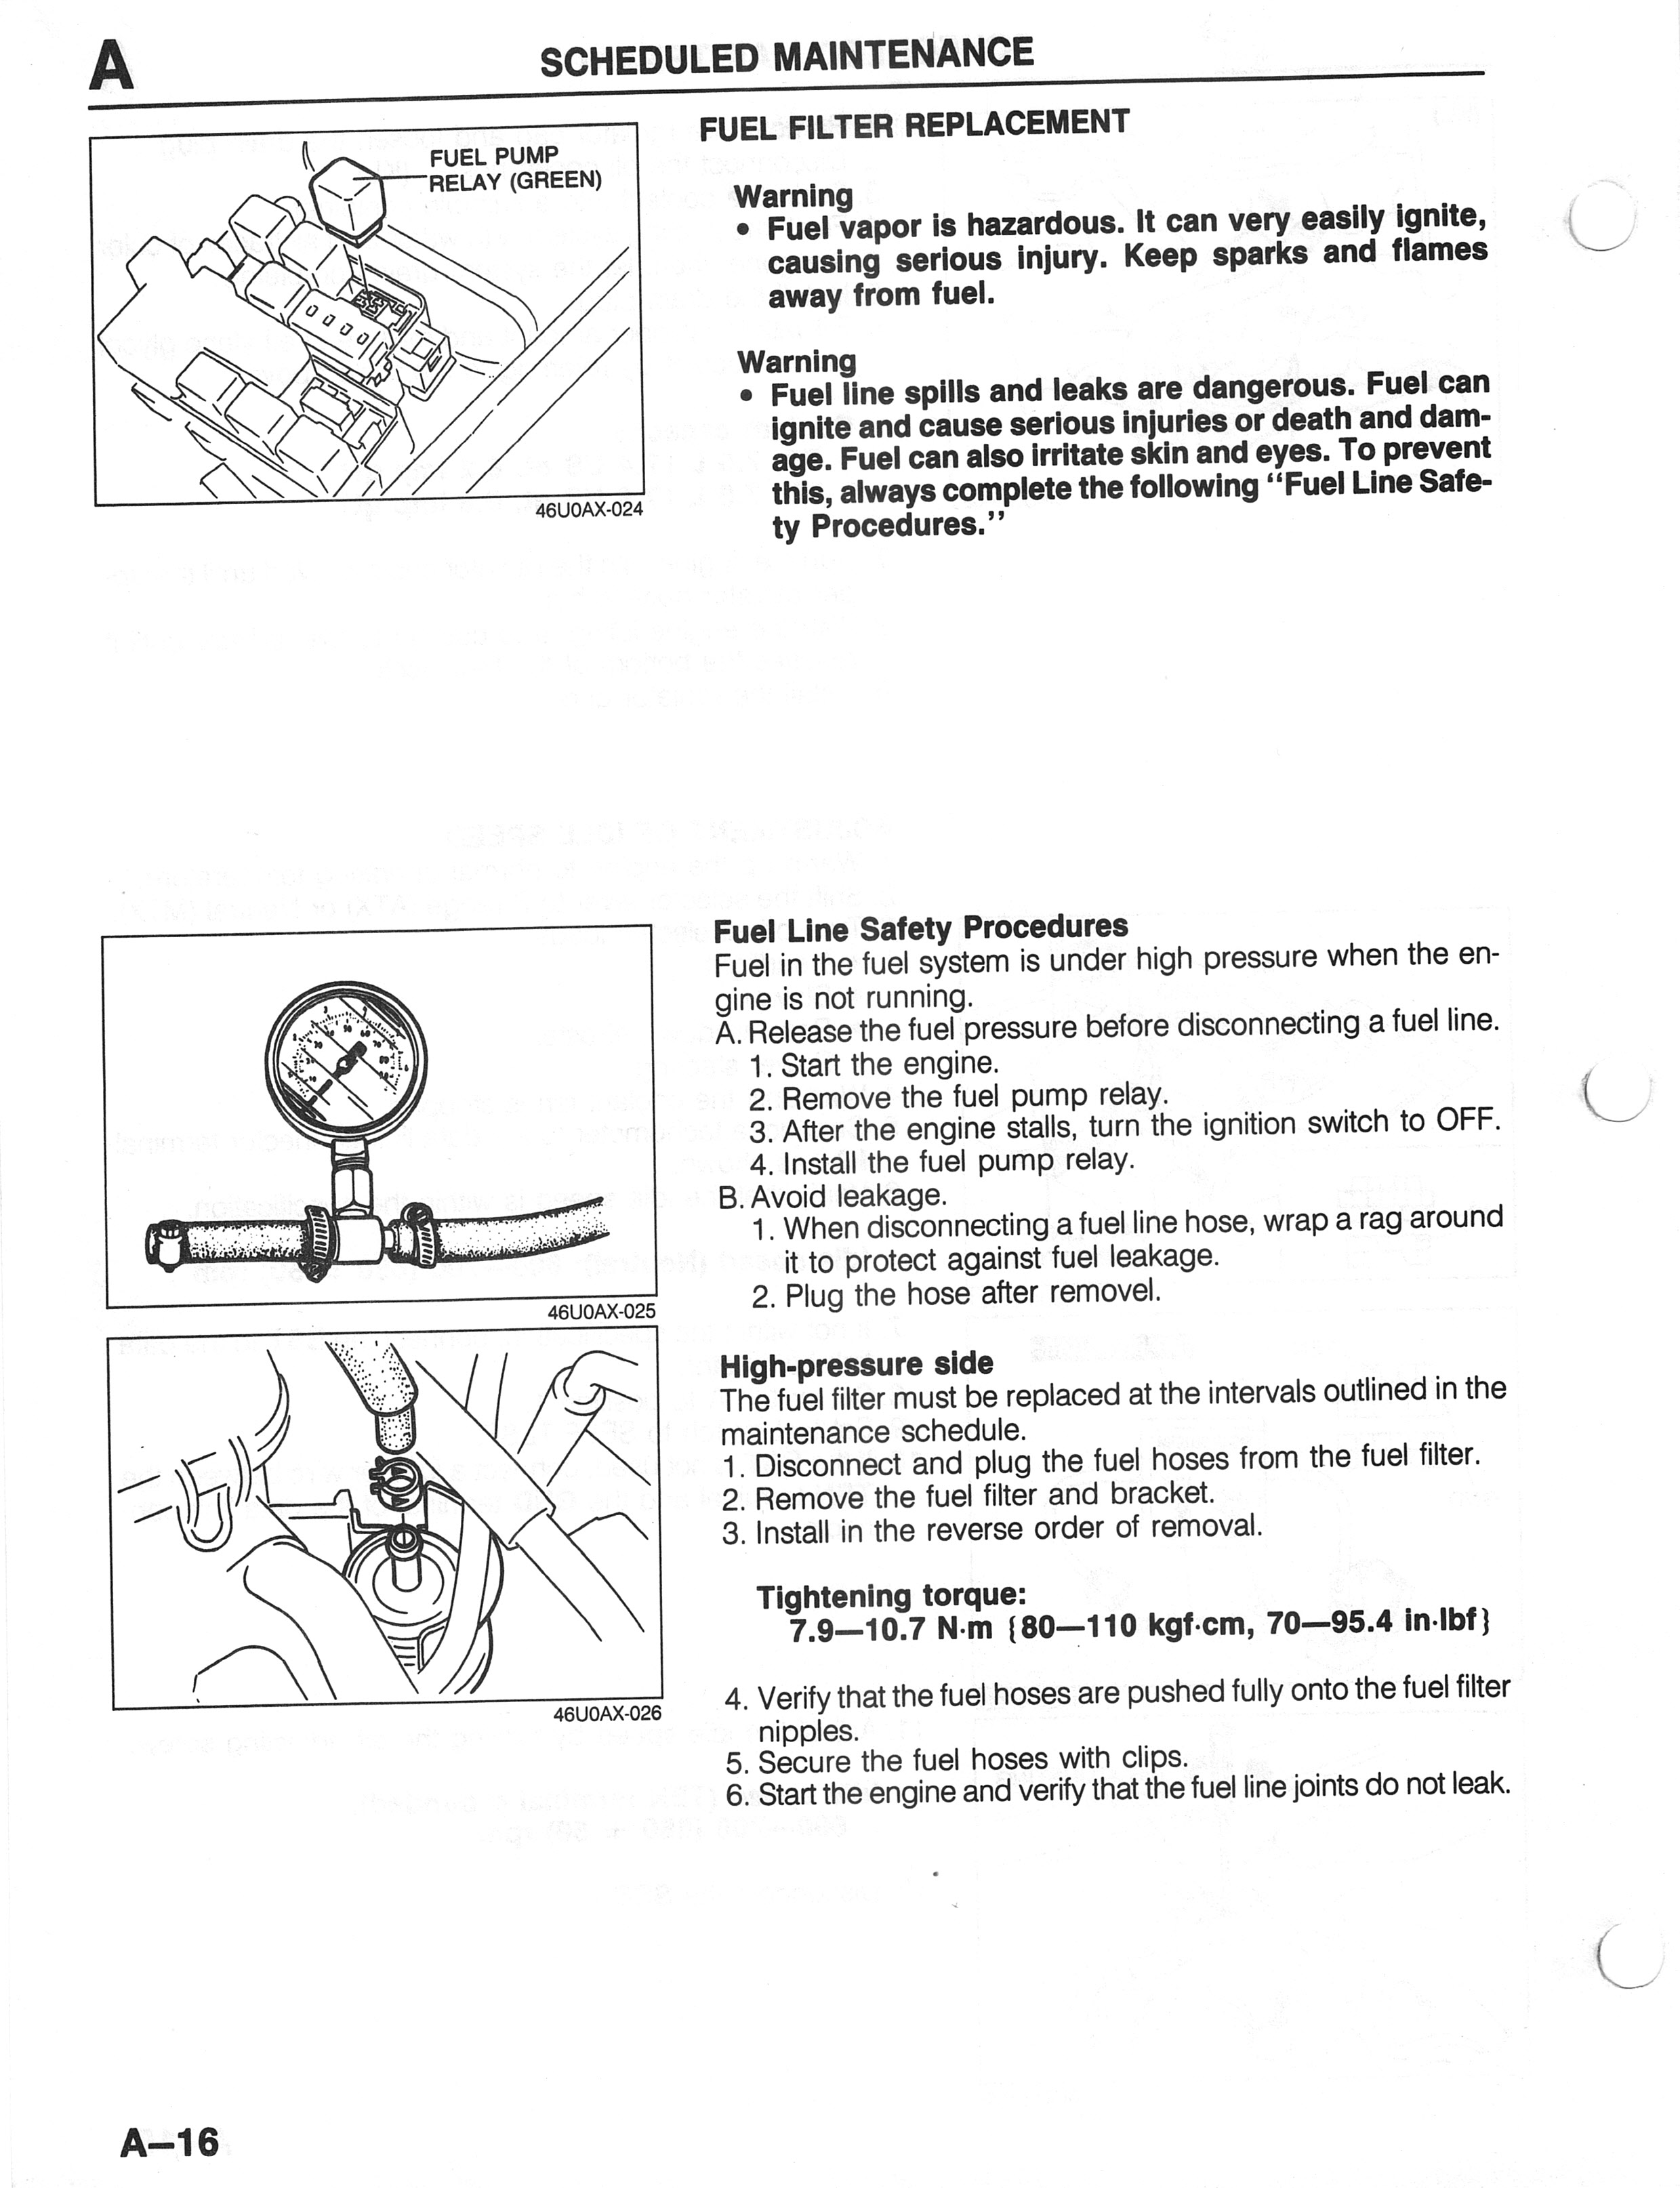 Us Mazda 626 Mx 6 Work Shop Manuals Scans 1994 Wsm Fuel Filter Replacement A 16 727kb Aug 24 2014 043021 Am